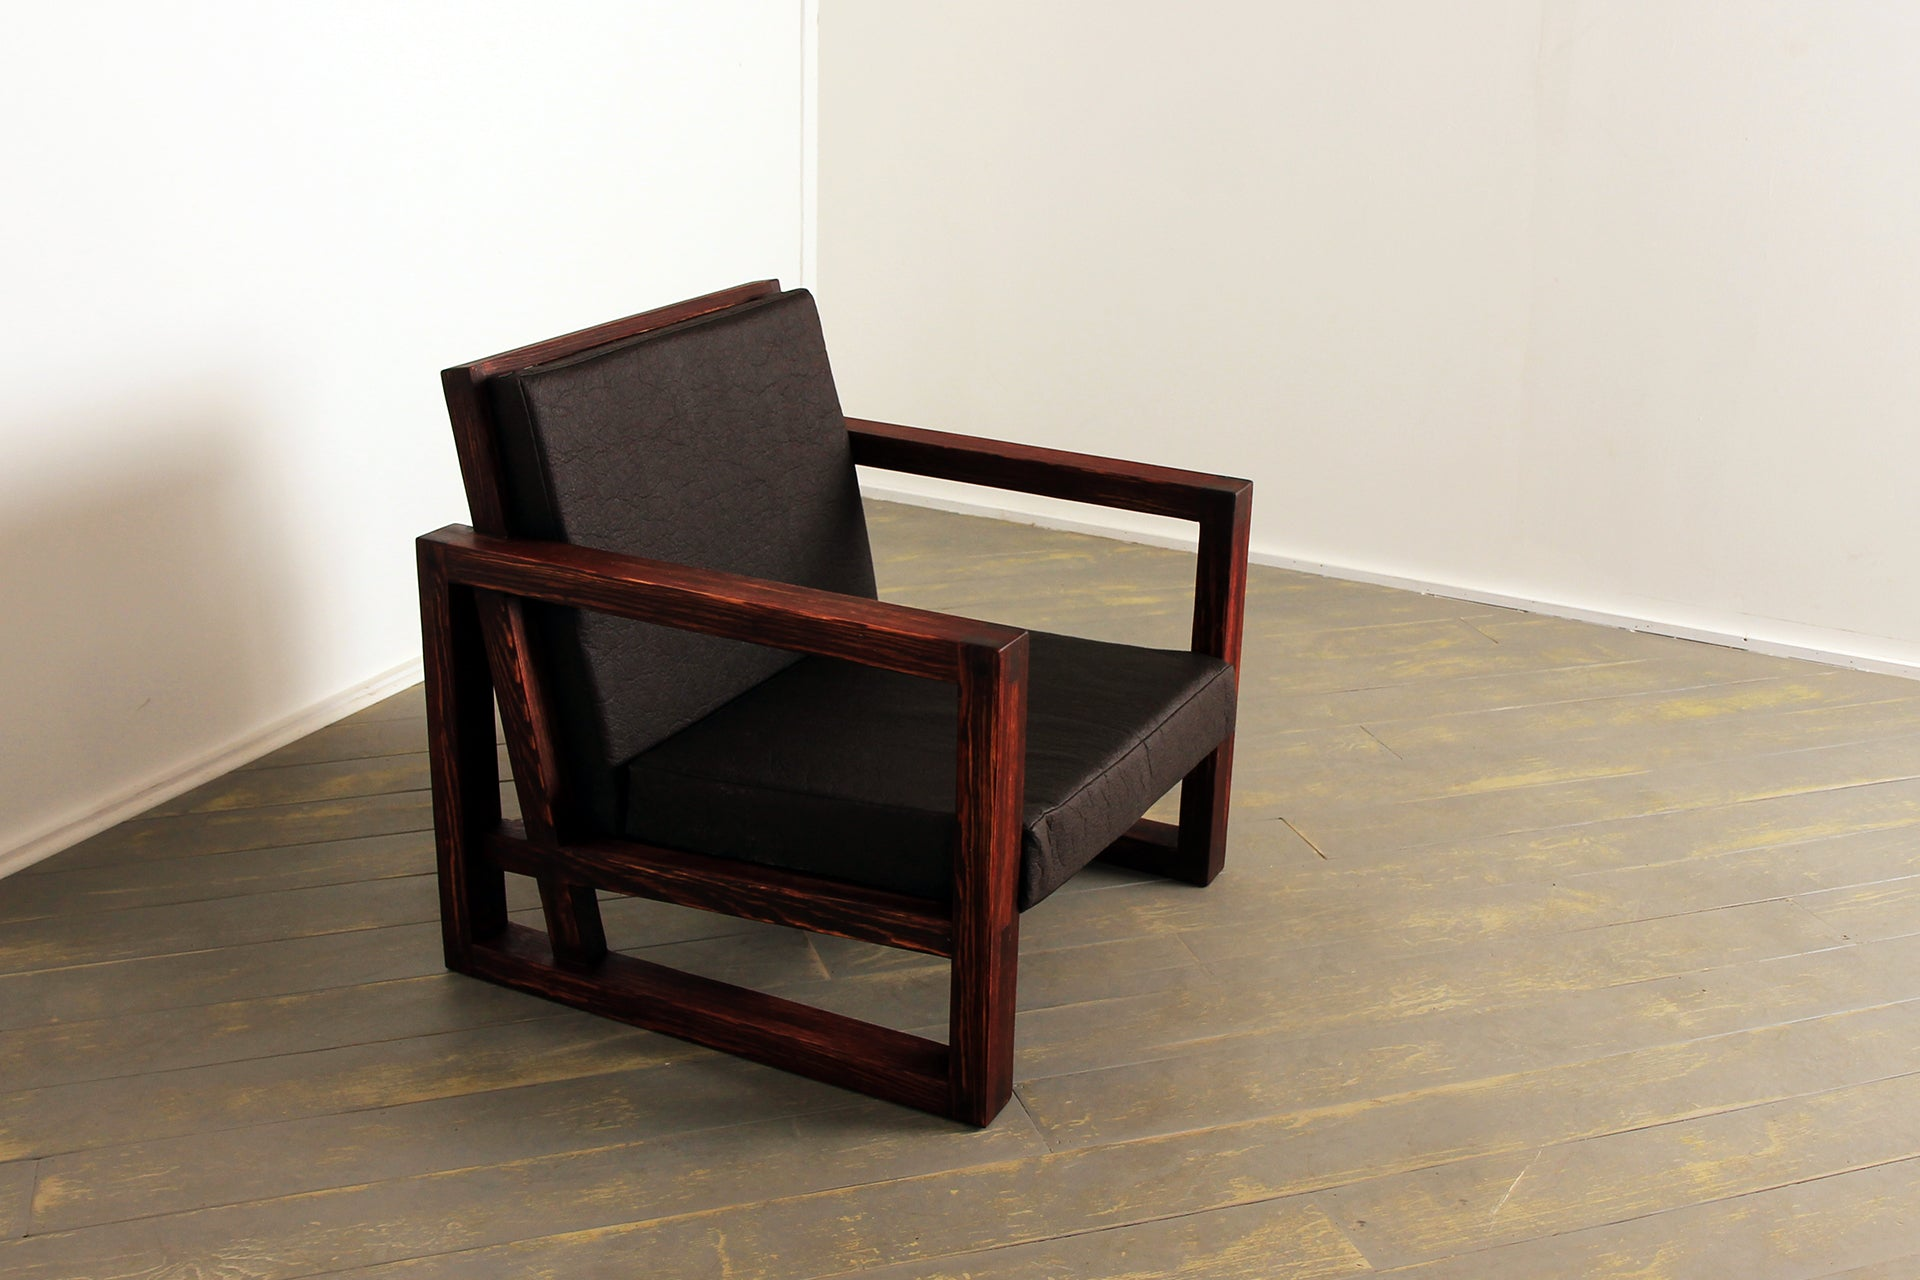 The Breathe Easy Chair in Distressed Bordeaux and Chestnut